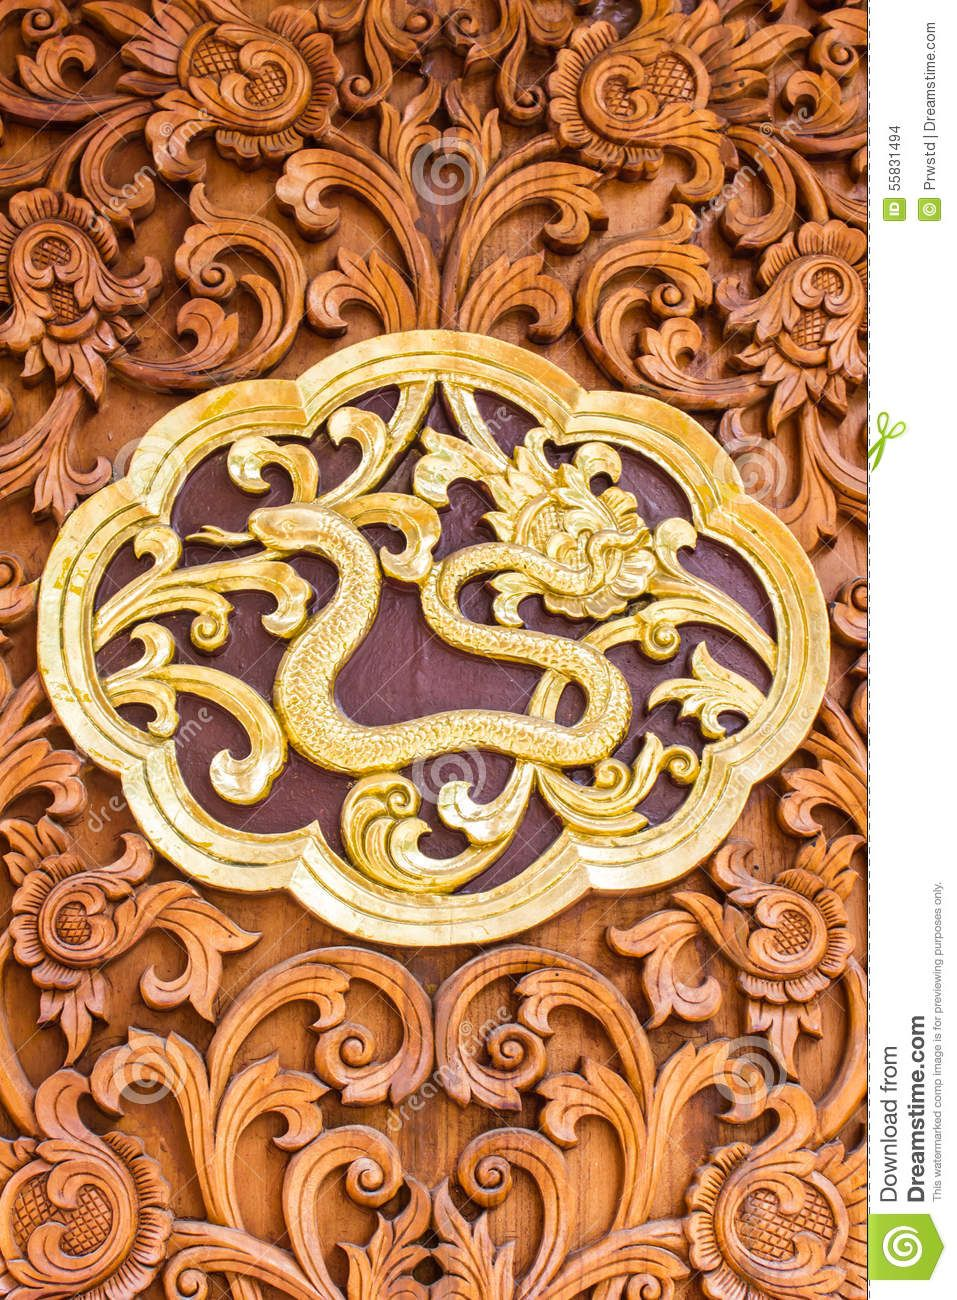 Snack Wood Carving Wall Sculptures In Thai Temple - Download From ...